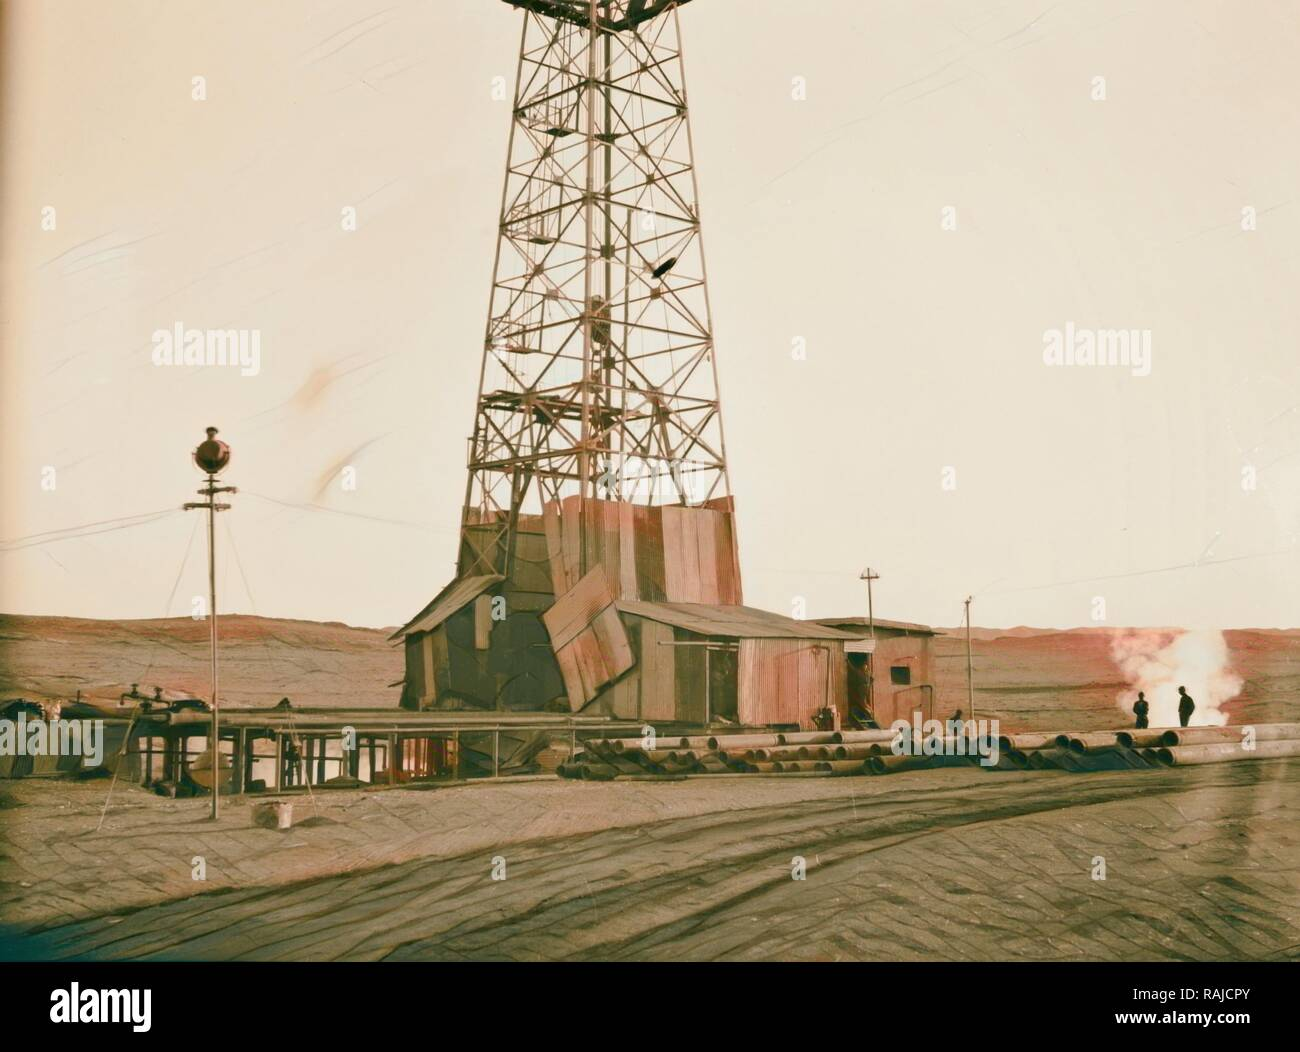 Iraq, oil fields, drilling tower  Photo possibly shows oil